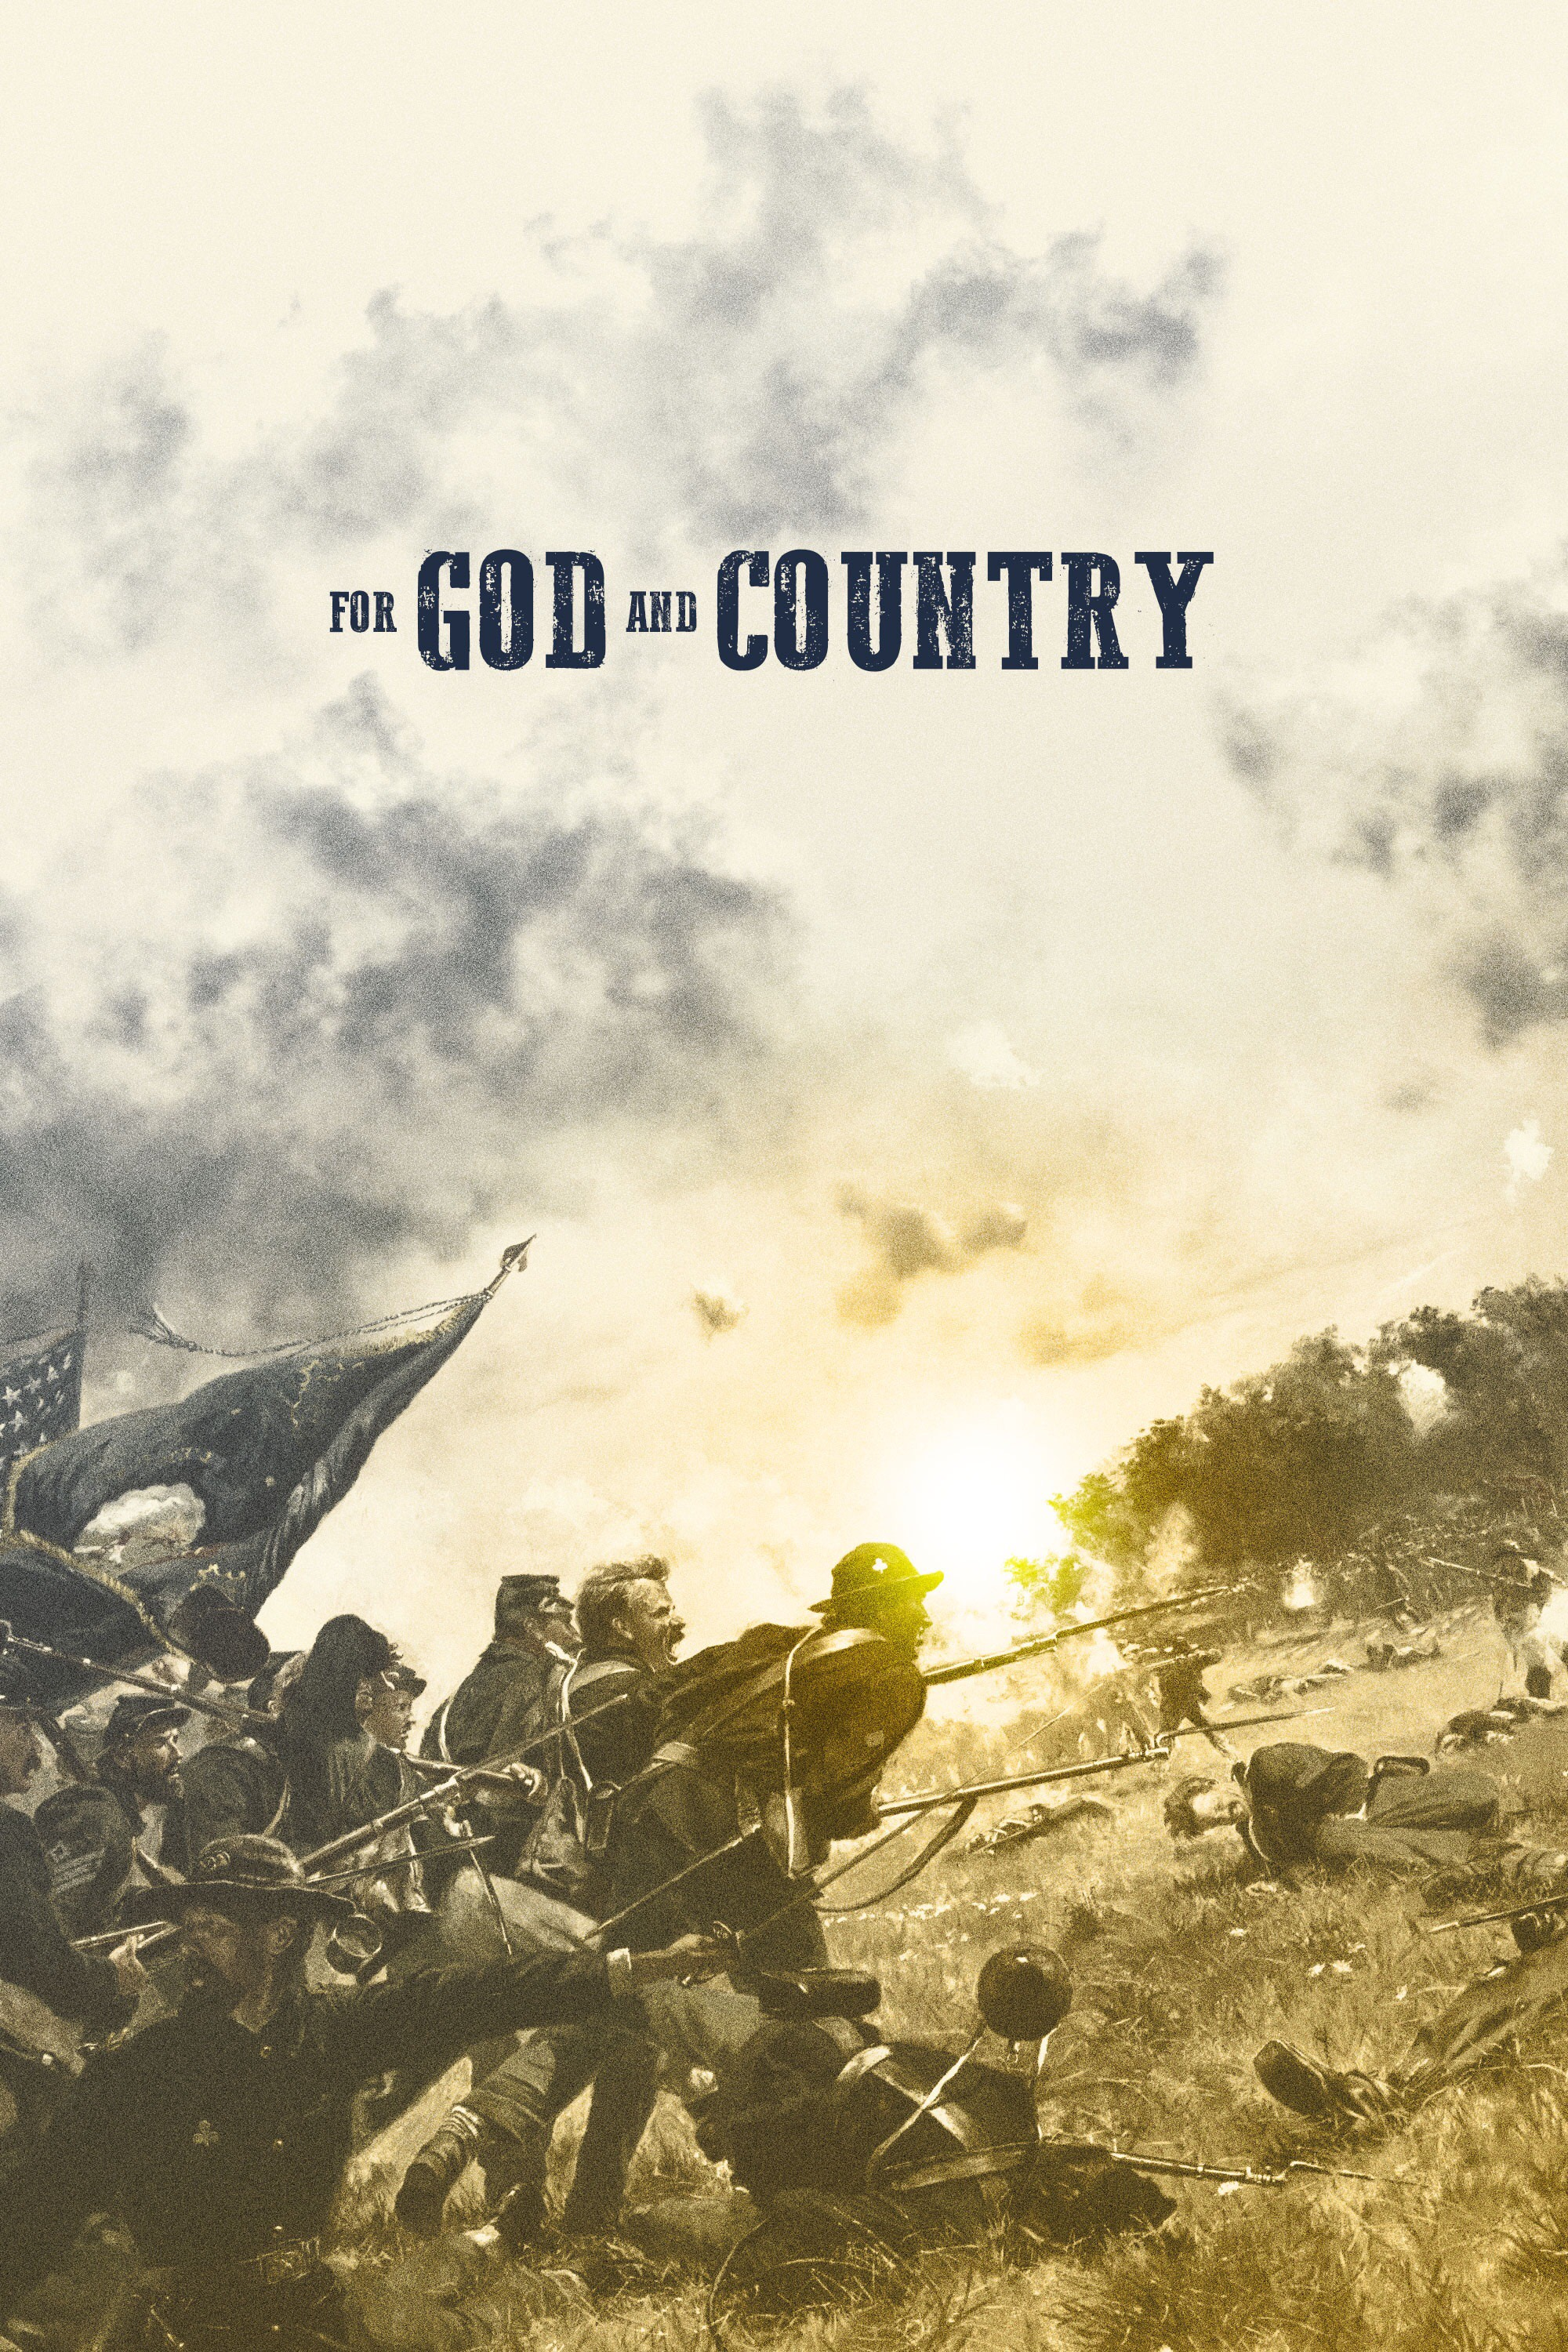 For God and Country